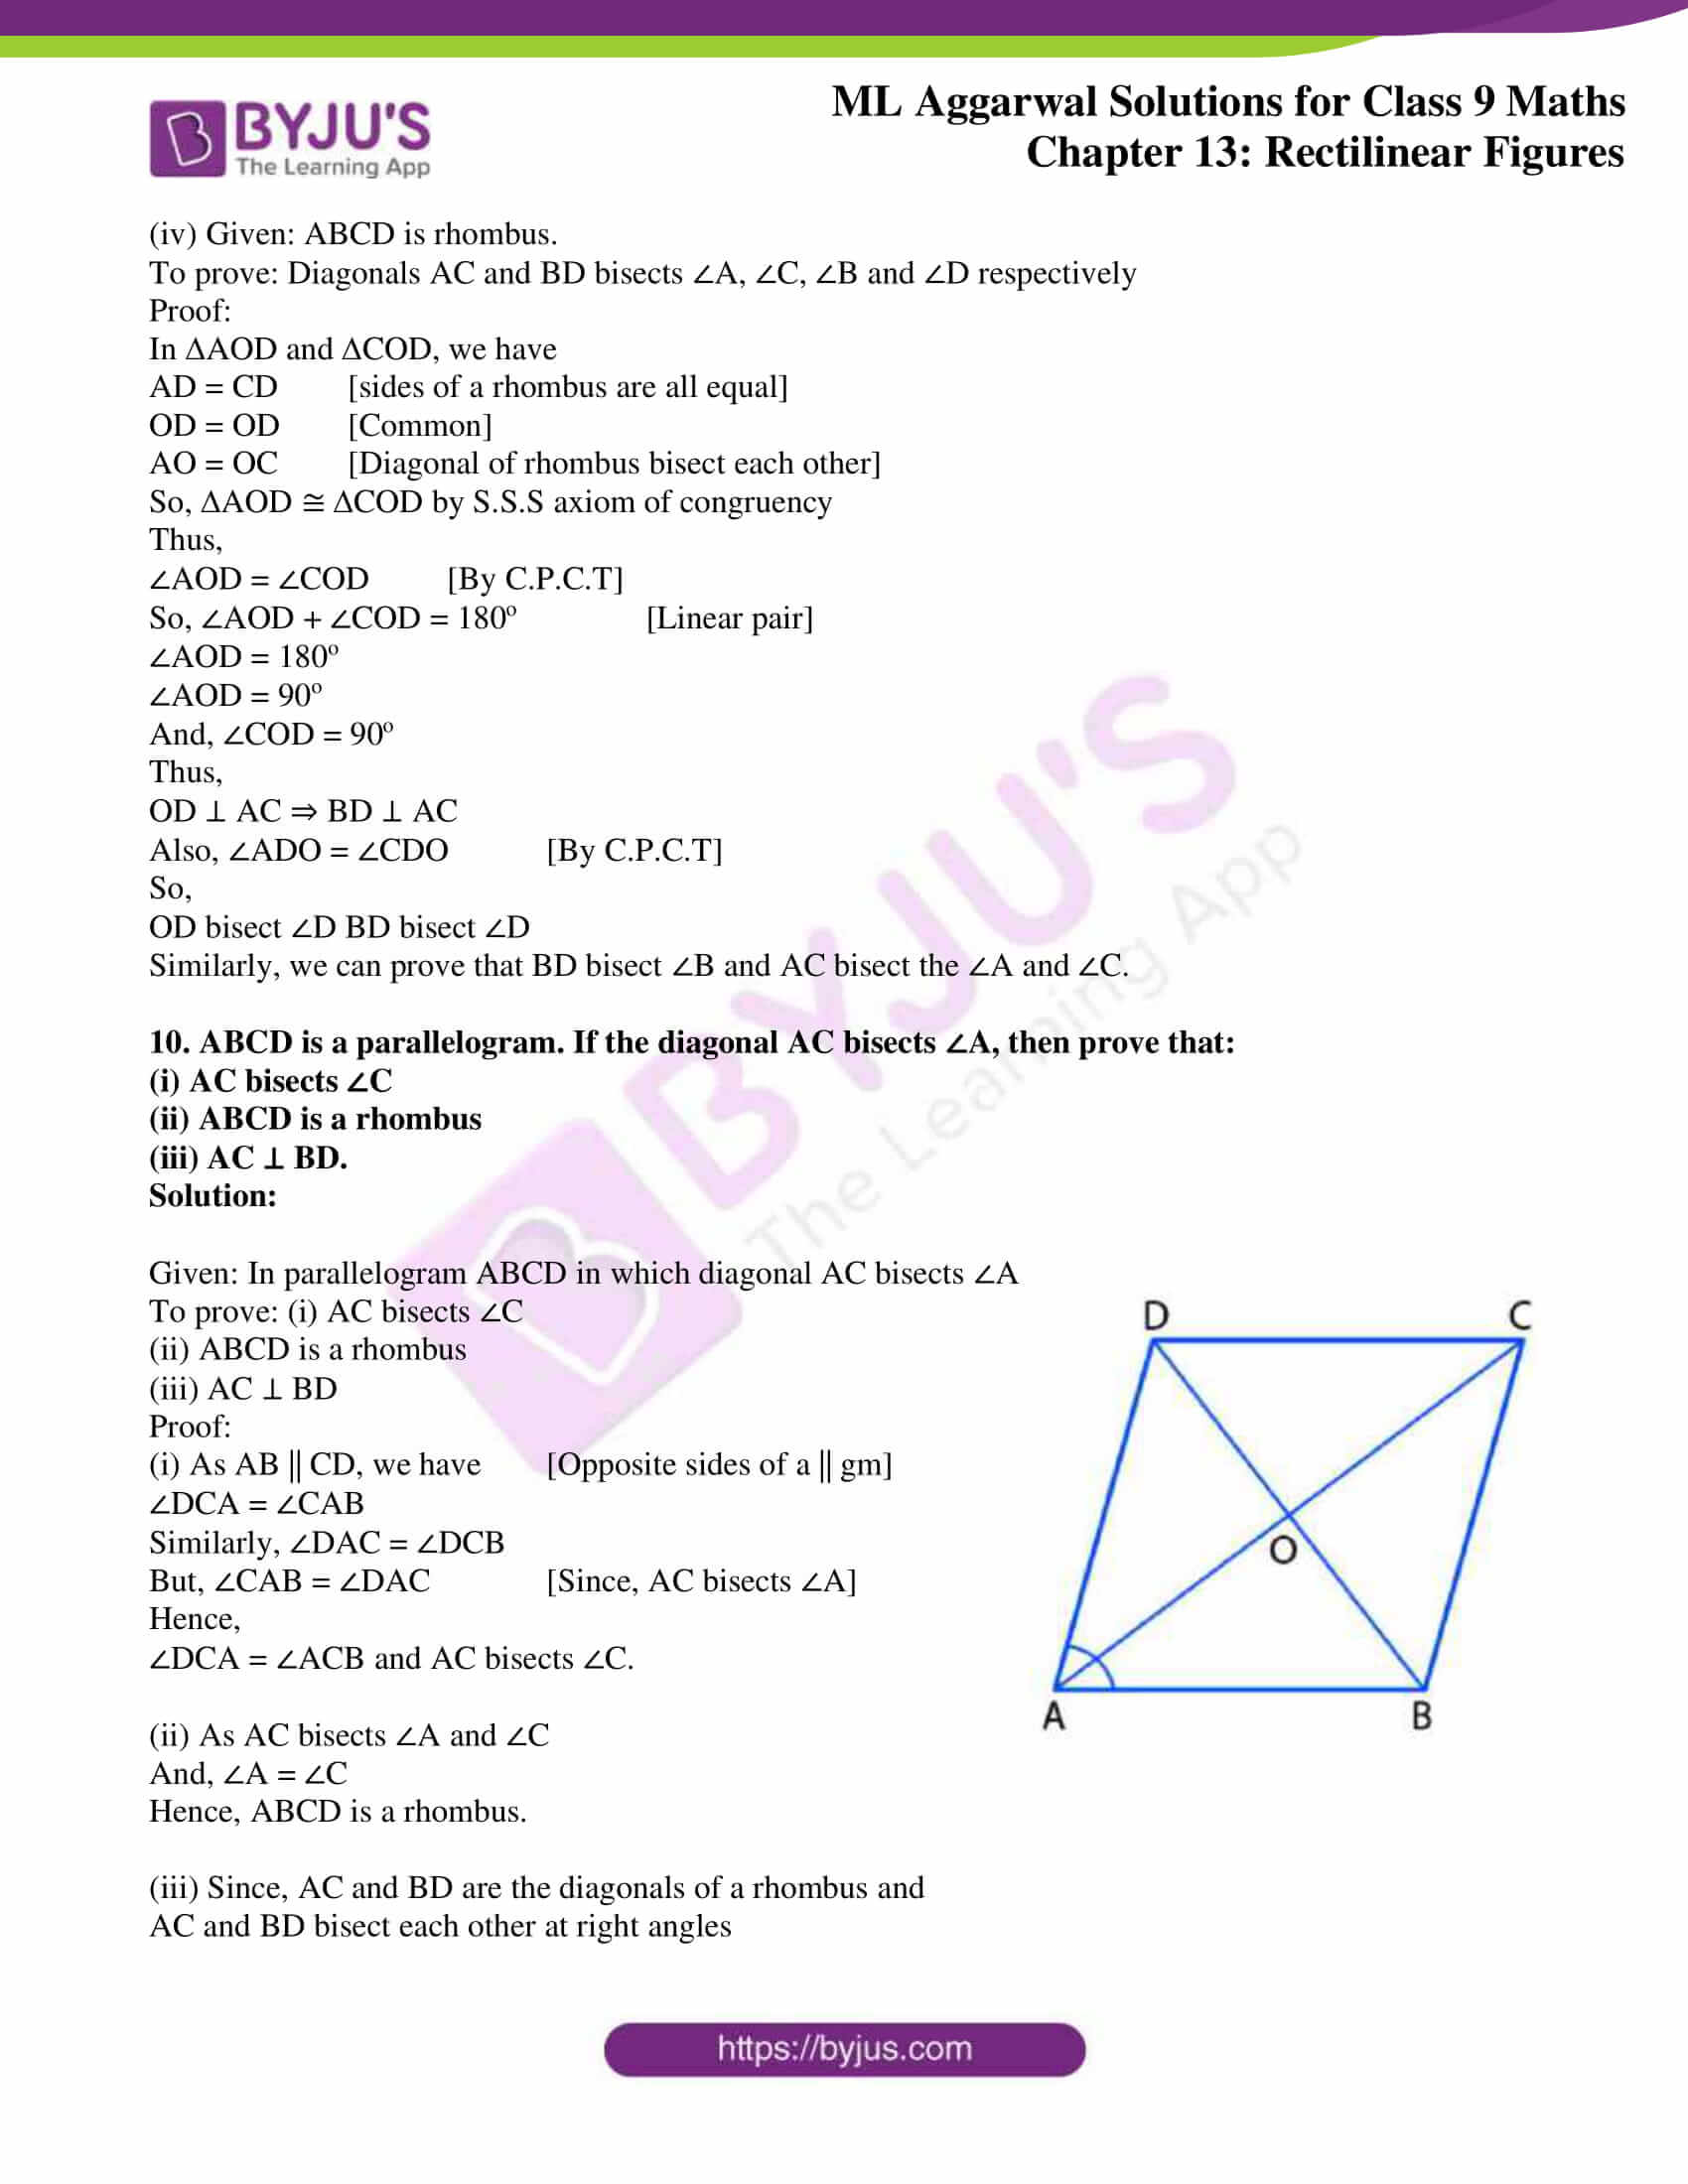 ml aggarwal solutions for class 9 maths chapter 13 10